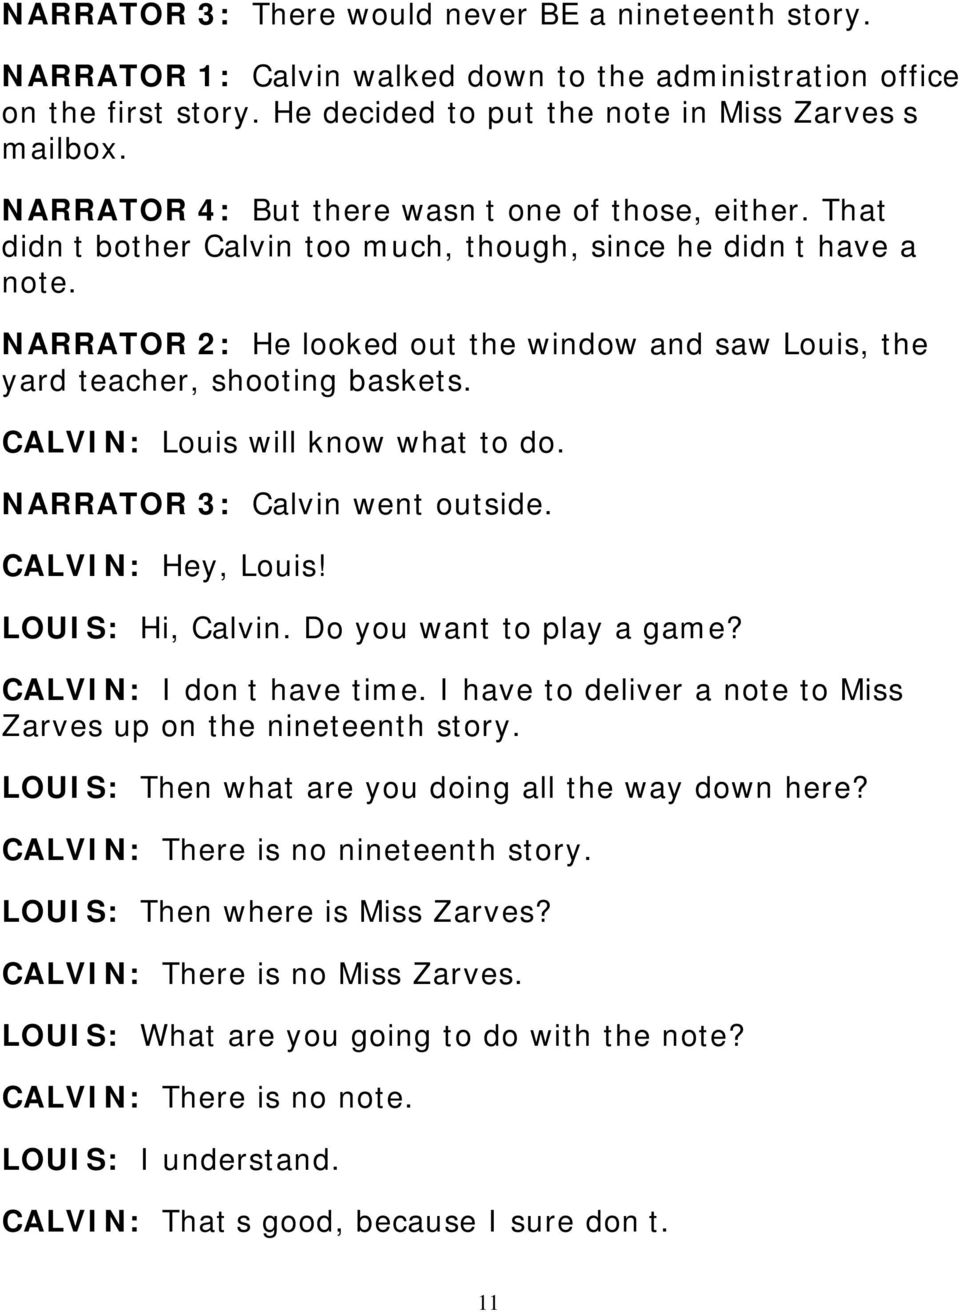 NARRATOR 2: He looked out the window and saw Louis, the yard teacher, shooting baskets. CALVIN: Louis will know what to do. NARRATOR 3: Calvin went outside. CALVIN: Hey, Louis! LOUIS: Hi, Calvin.